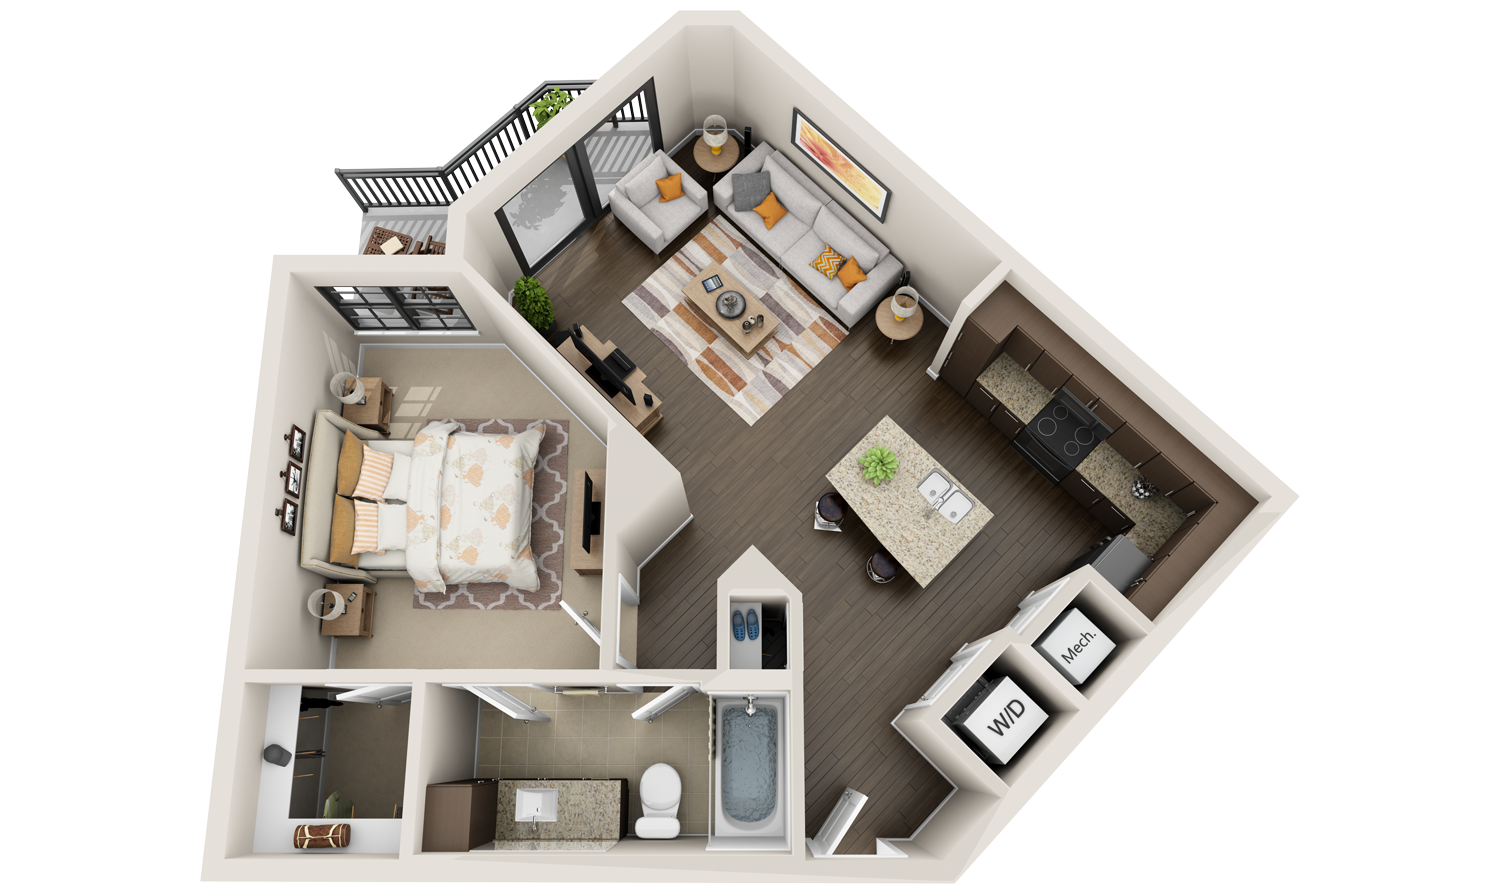 Best 3d floor plans tours for apartments for Apartment design plans 3d